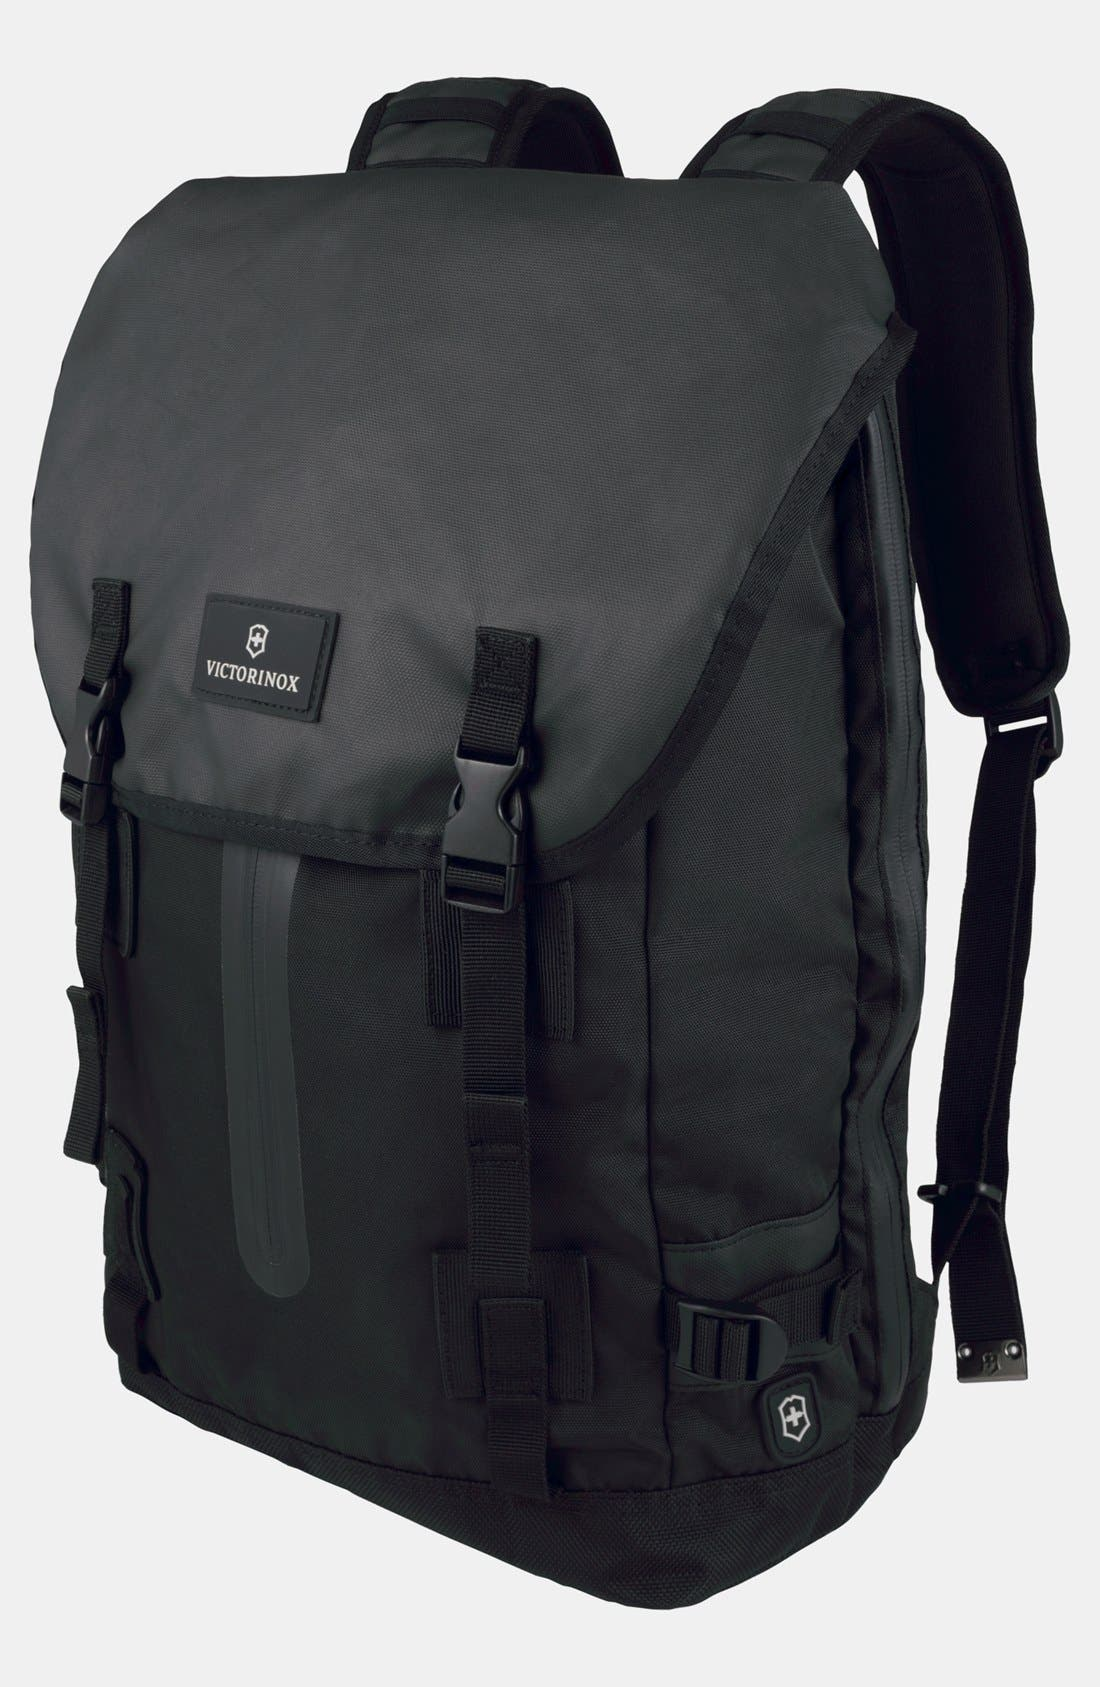 Victorinox Swiss Army Flapover Backpack -